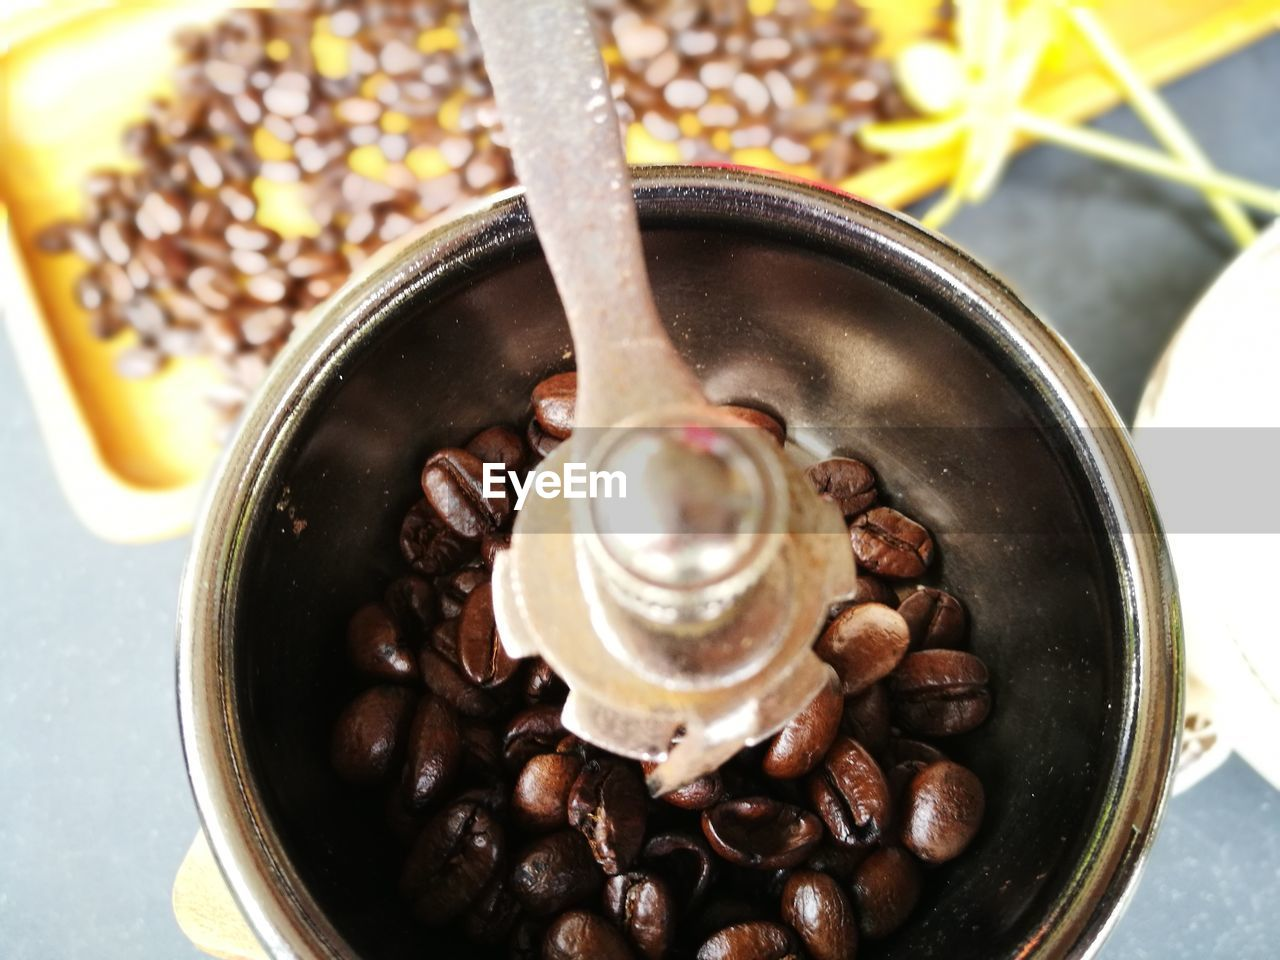 HIGH ANGLE VIEW OF DRINK IN CONTAINER WITH SPOON